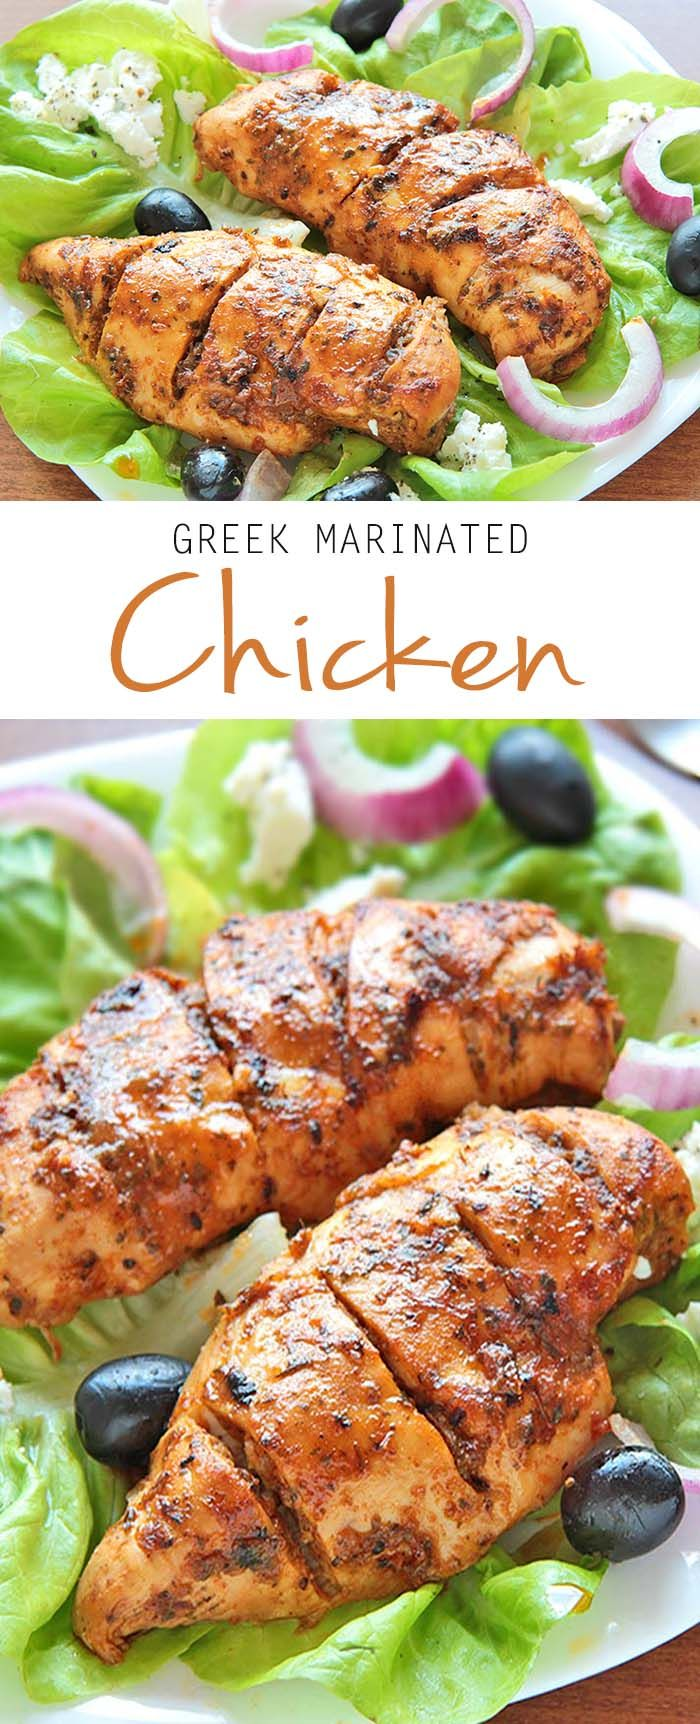 Easy Greek Marinated Chicken | Recipe | See more best ...